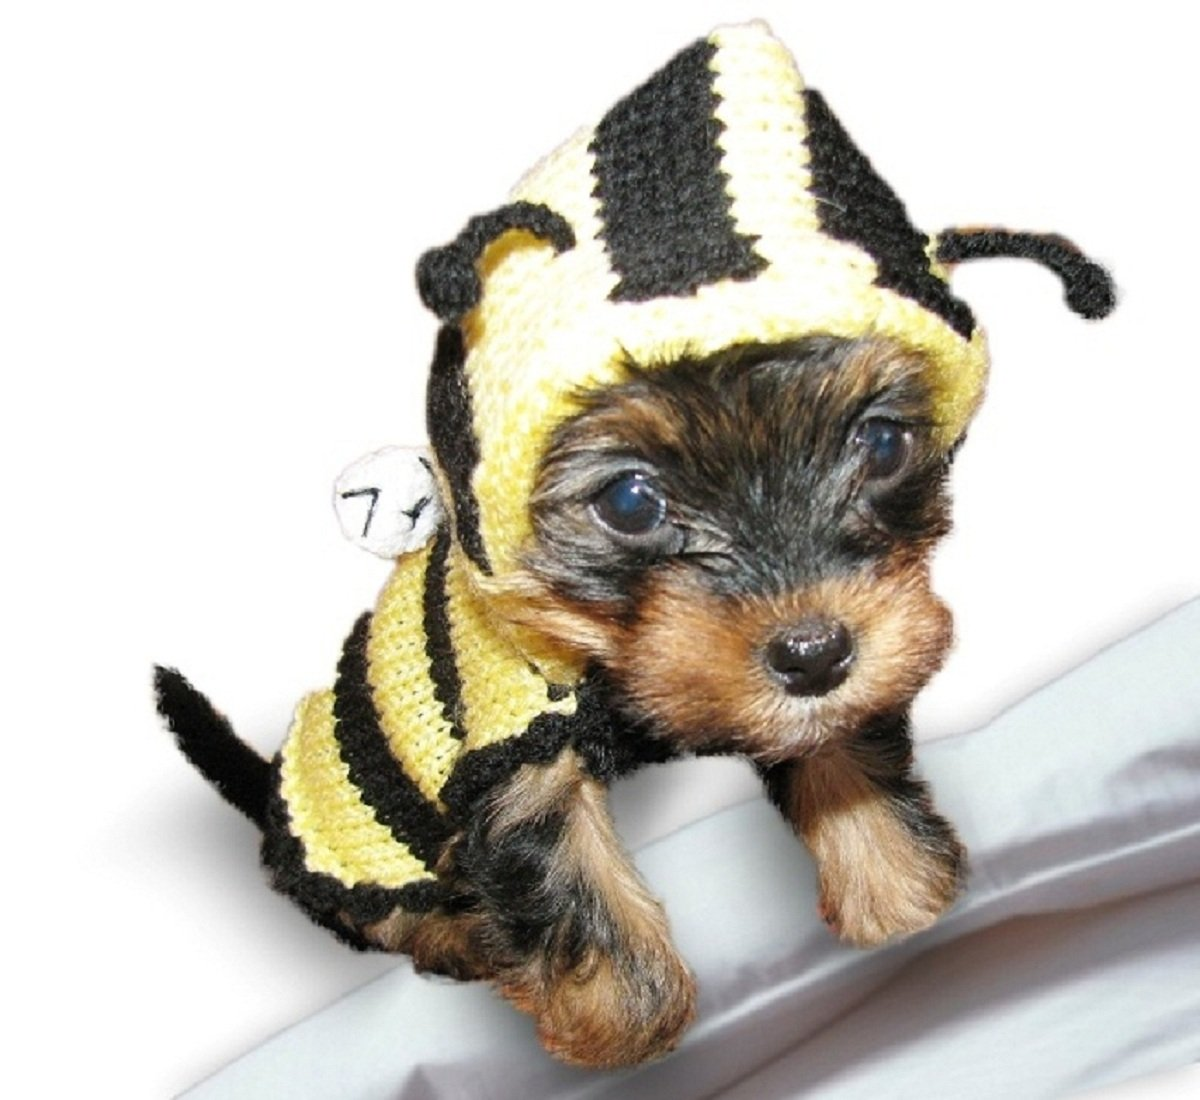 Bee XXXS Small Dog Sweater Costume Teacup Dog Clothes Yorkie Chihuahua Clothes Puppy Sweater Hoodie Apparel by Dog Fashion